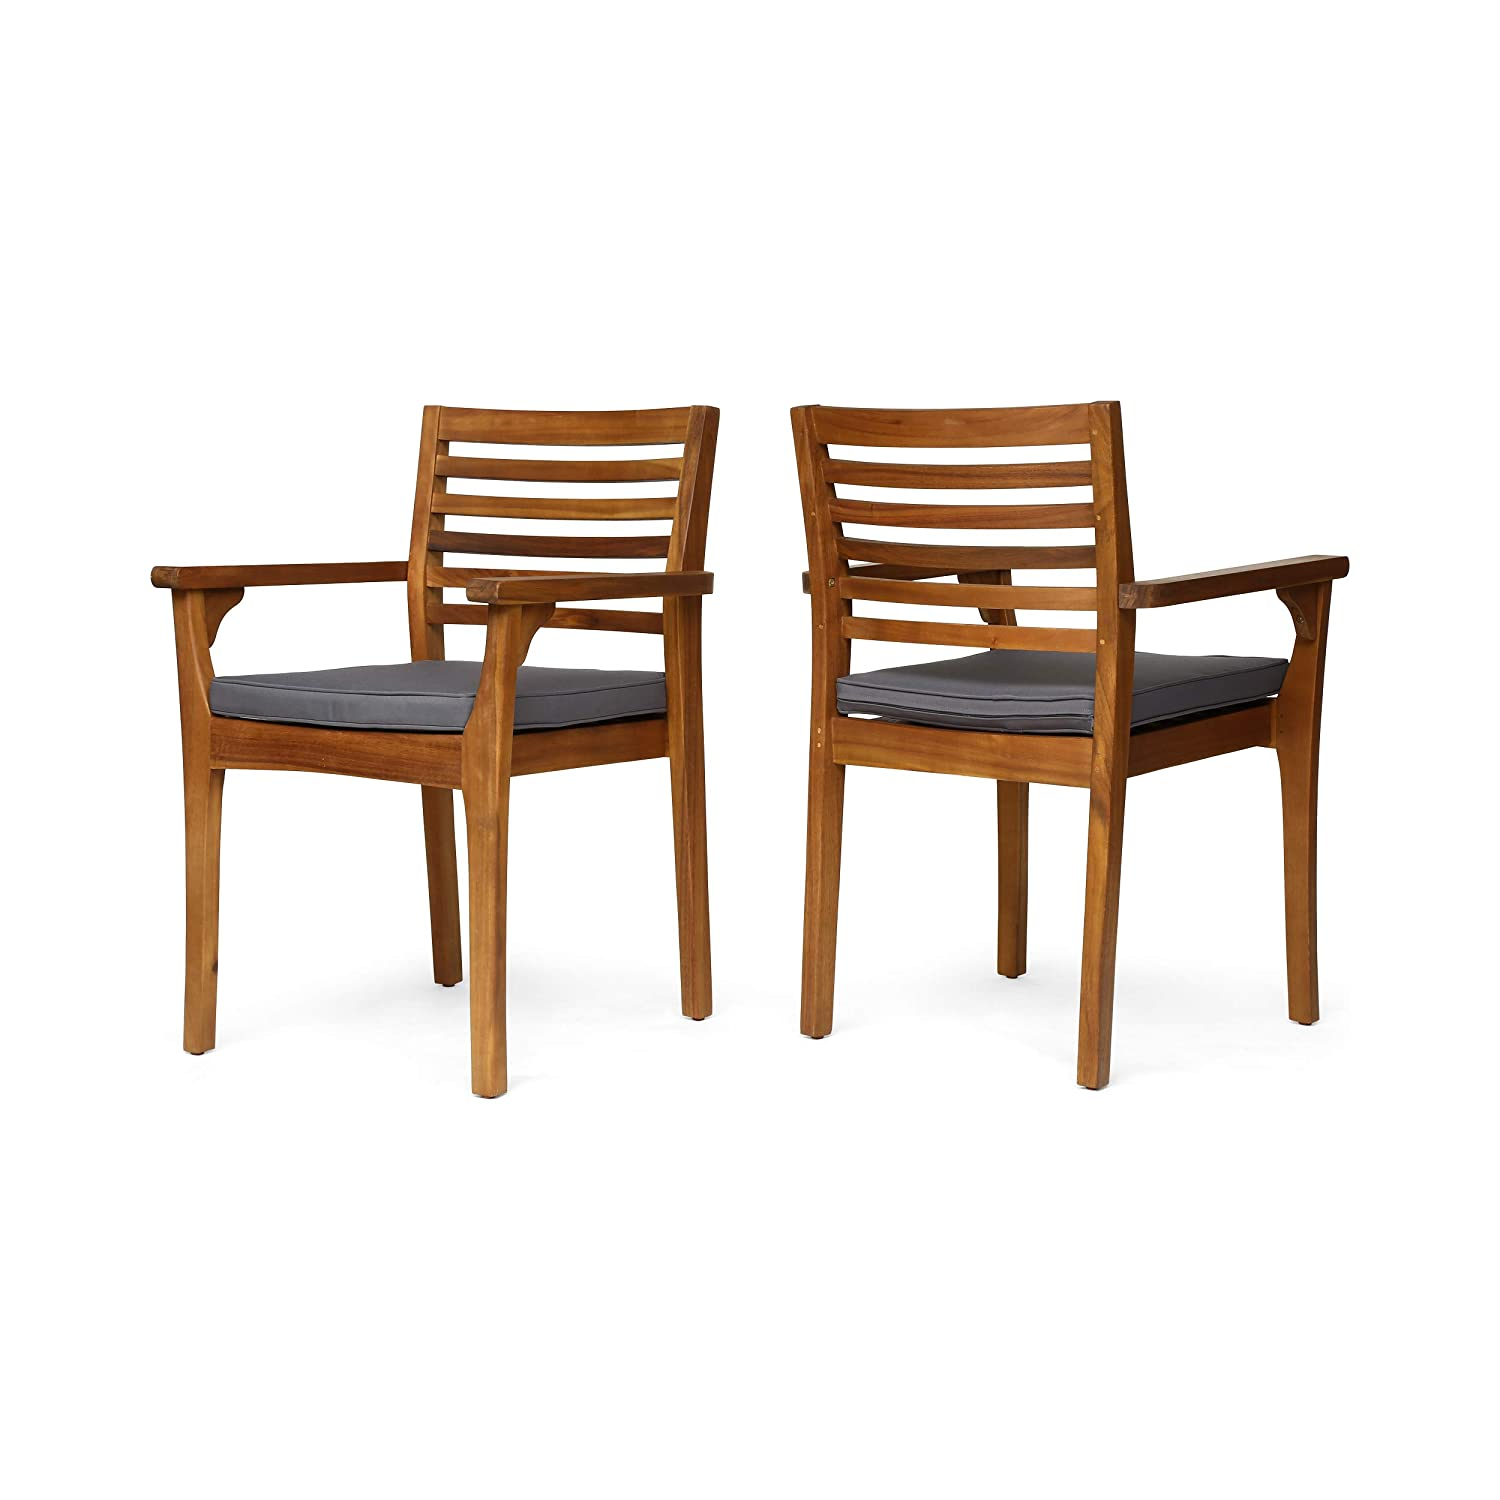 Great Deal Furniture Esther Patio Dining Chairs, Acacia Wood and Outdoor Cushions, Teak and Dark Gray Set of 2